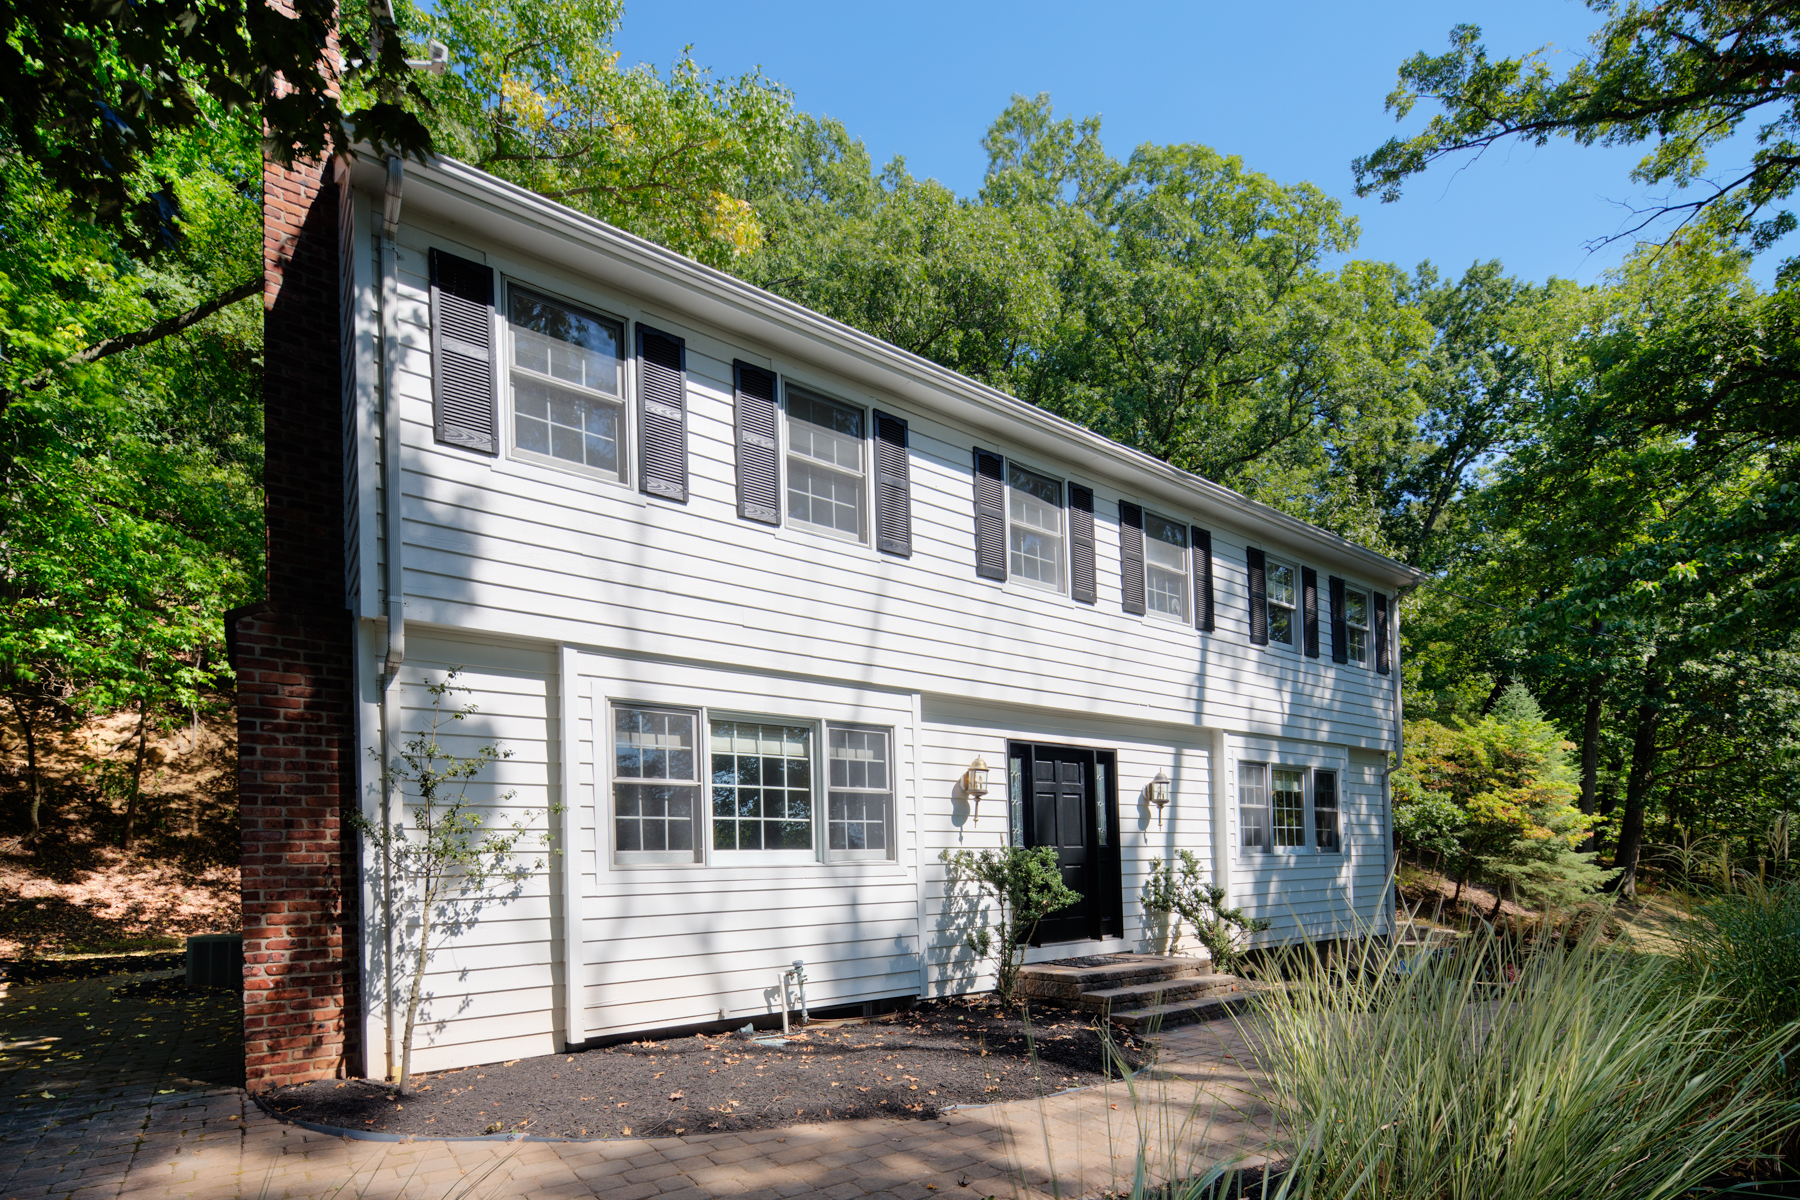 Single Family Home for Sale at Well Maintained Colonial 6 Claire Drive Bridgewater, New Jersey 08807 United States